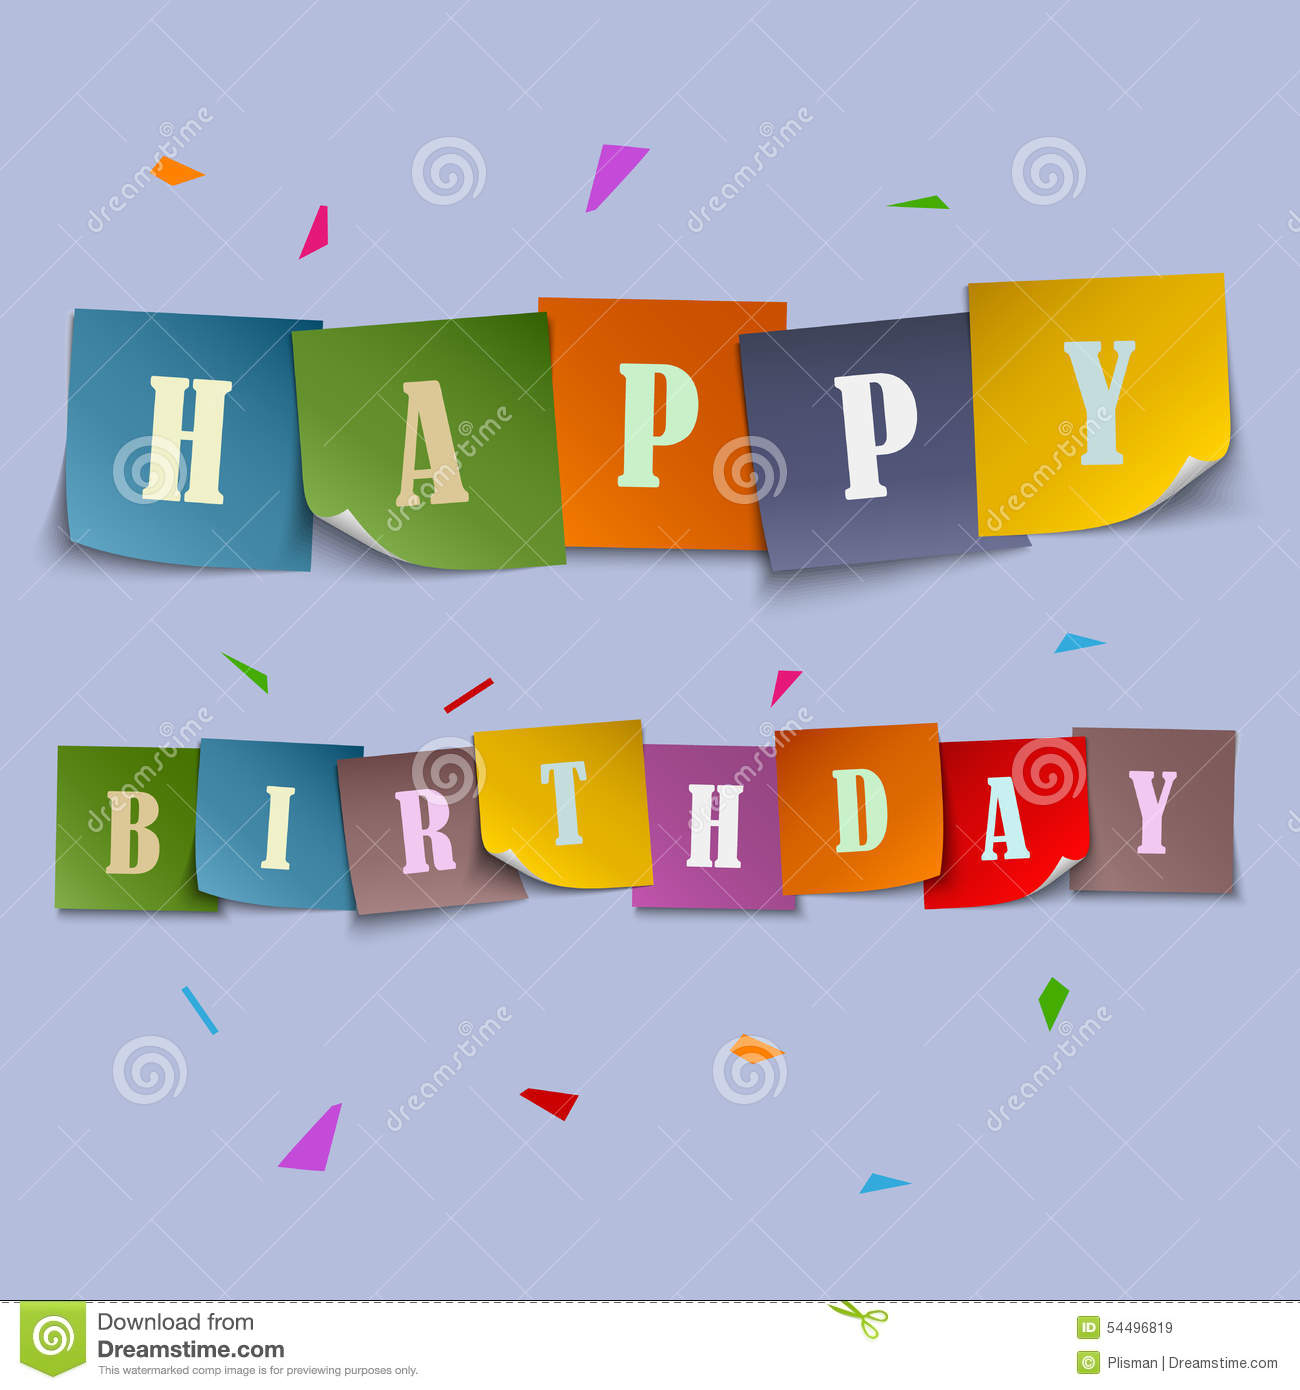 free birthday sticker templates ; happy-birthday-card-colored-stickers-template-vector-eps-54496819